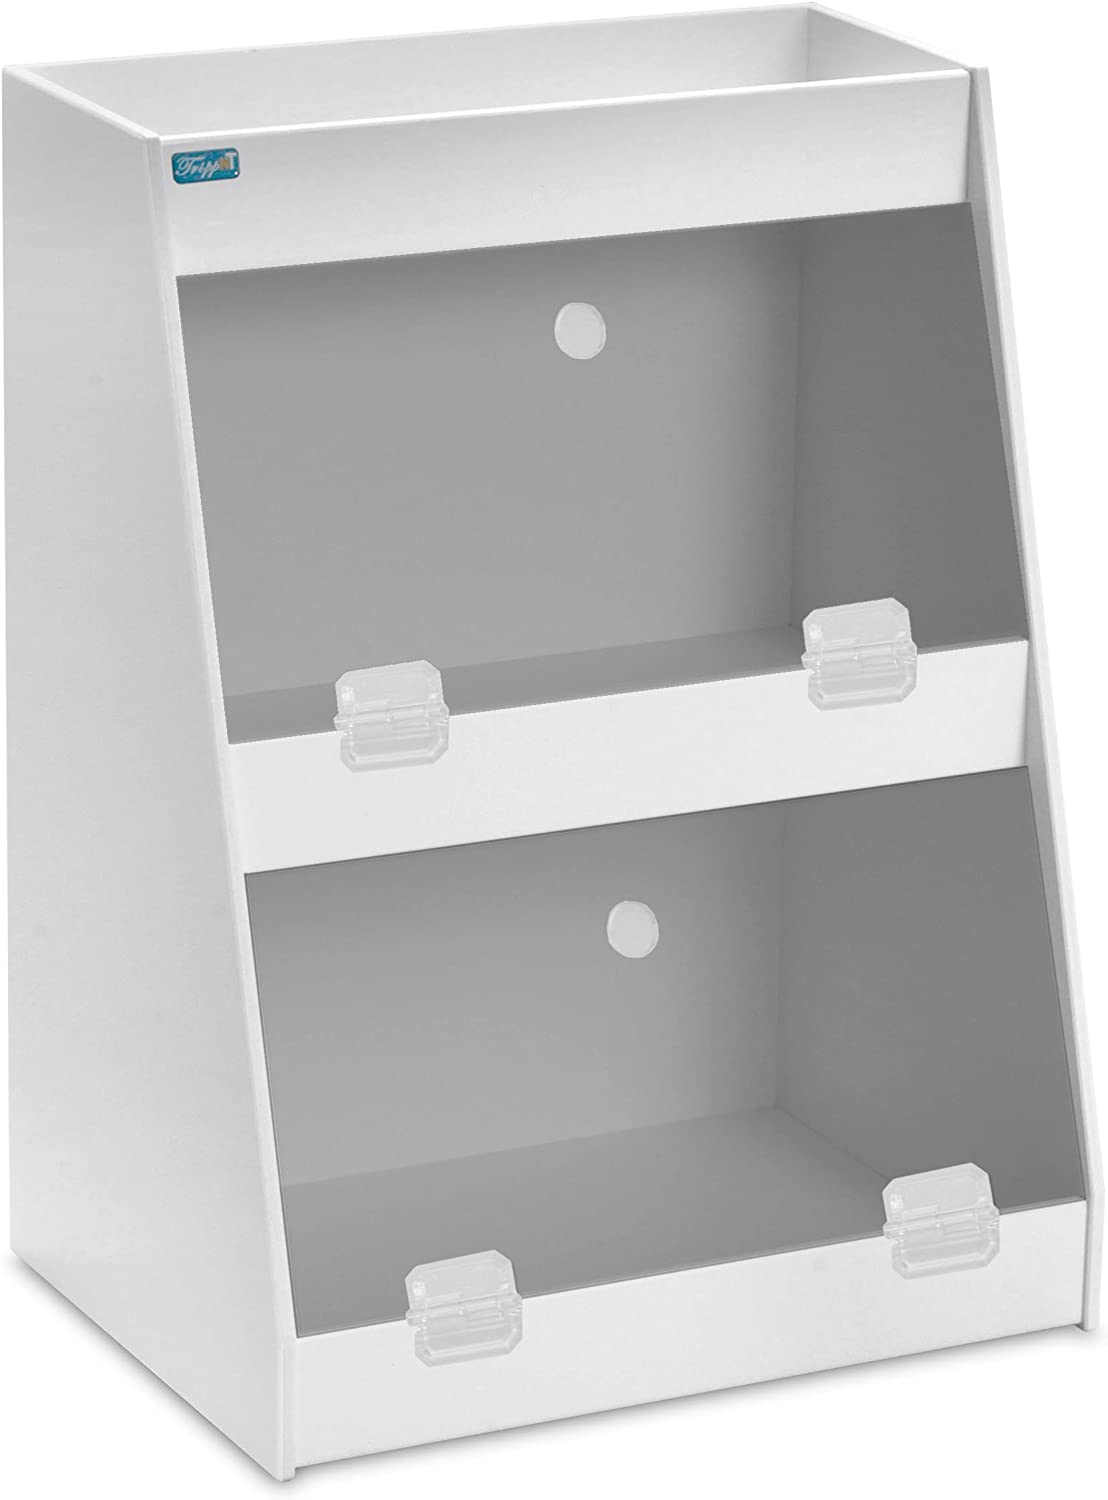 TrippNT 50013 PVC Angled Triple Safety Shelves with Smoke Door, 12-Inch Width x 16-Inch Height x 9-Inch Depth, Smoke White